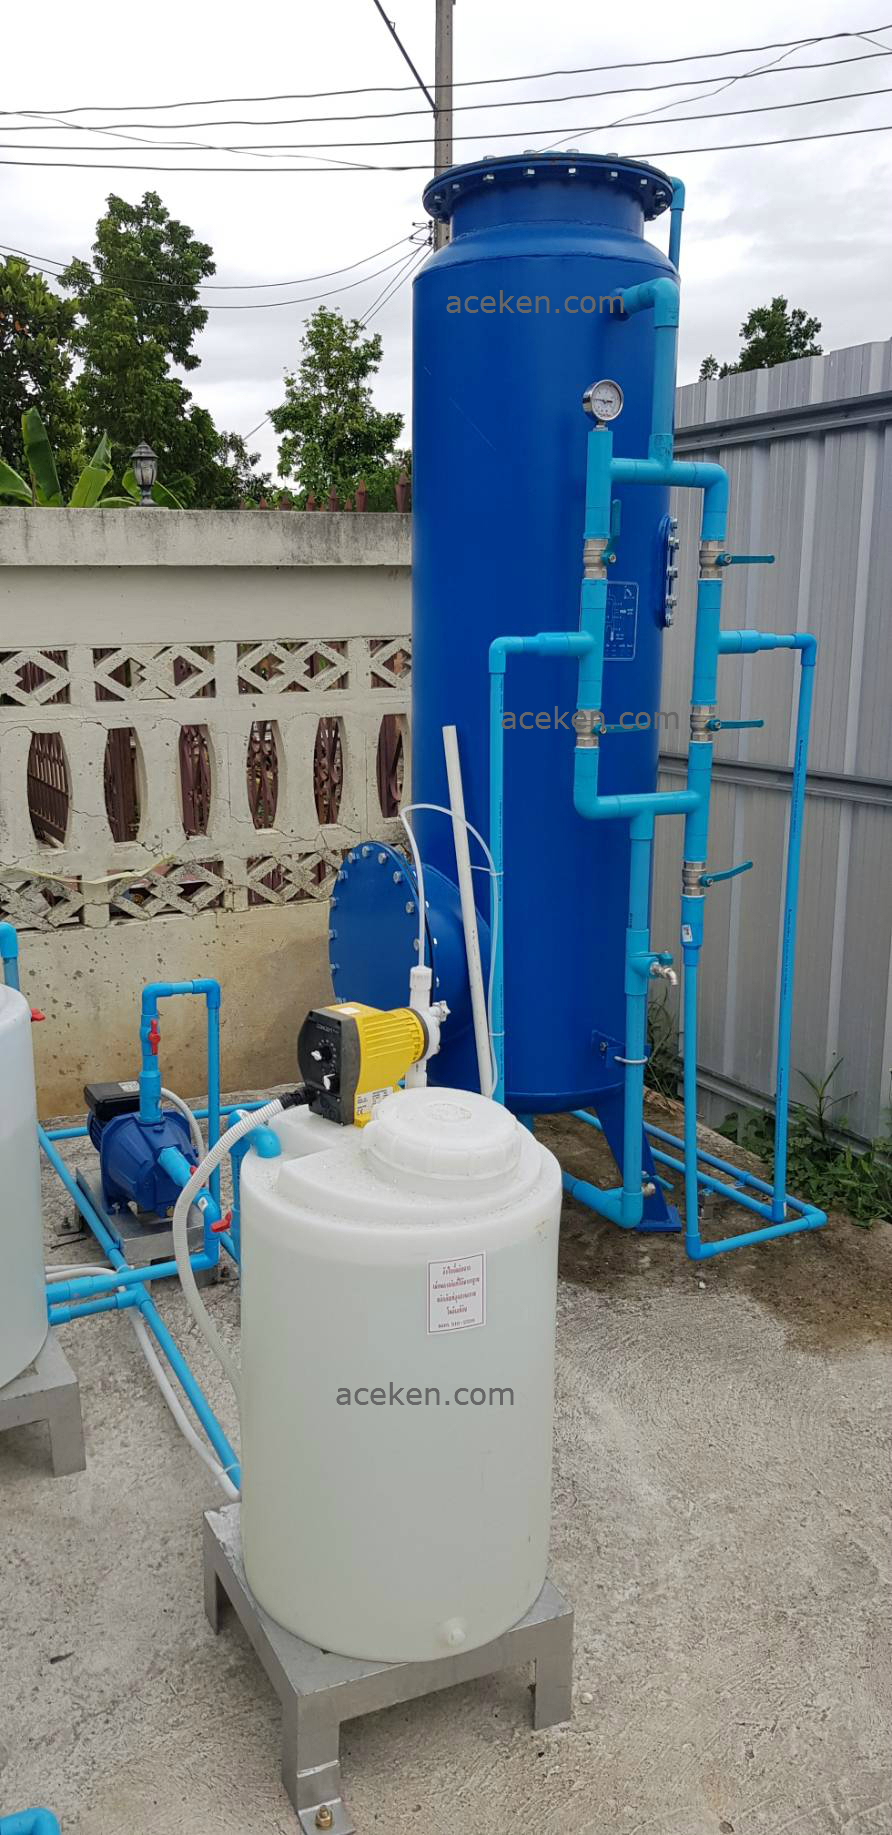 water_wastewater_treatment_recycle035